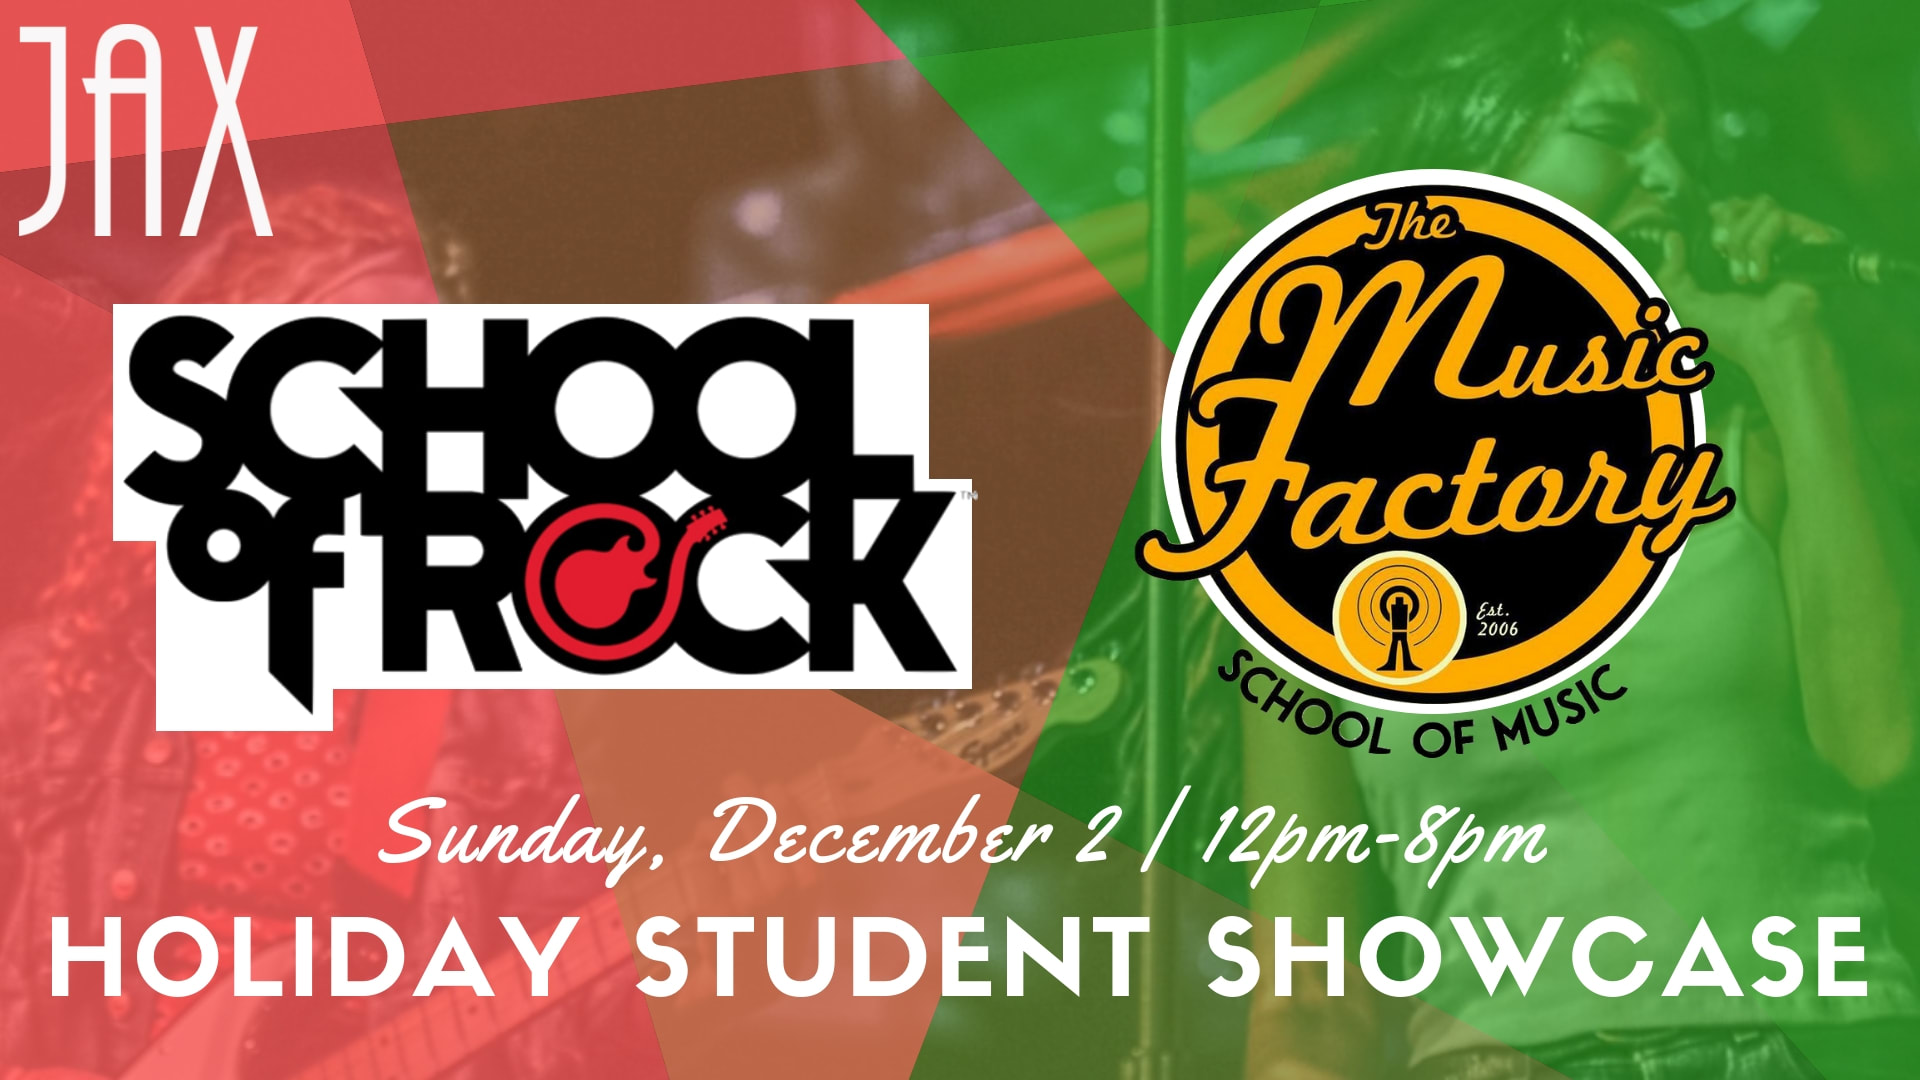 December 2 | STUDENT HOLIDAY SHOWCASE!